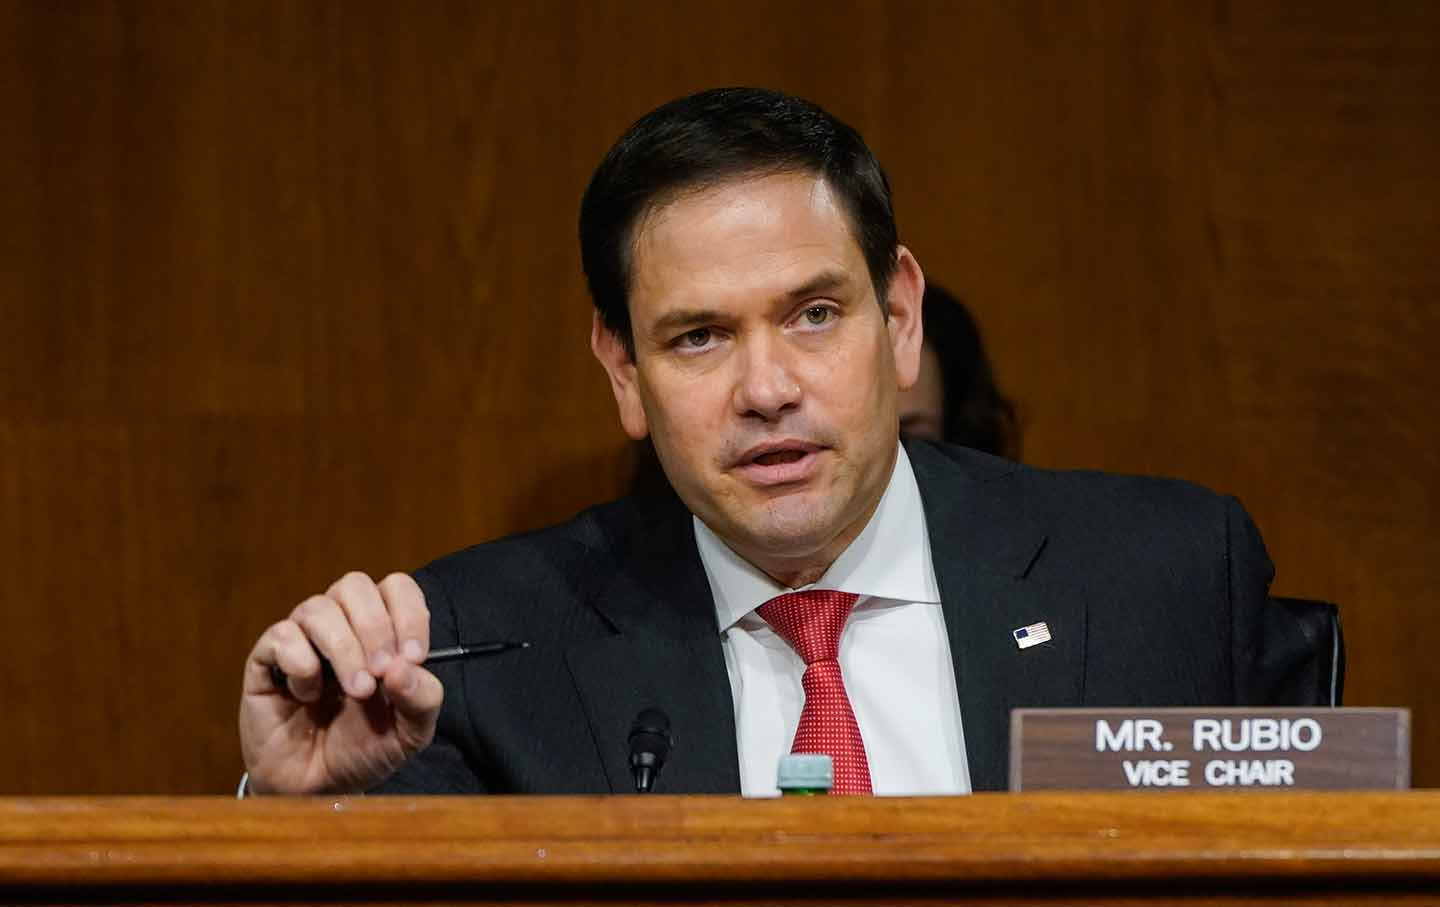 Sen. Marco Rubio, R-Fla., speaks during a Senate Intelligence Committee hearing on Capitol Hill on Tuesday, Feb. 23, 2021 in Washington. (Drew Angerer/Photo via AP)